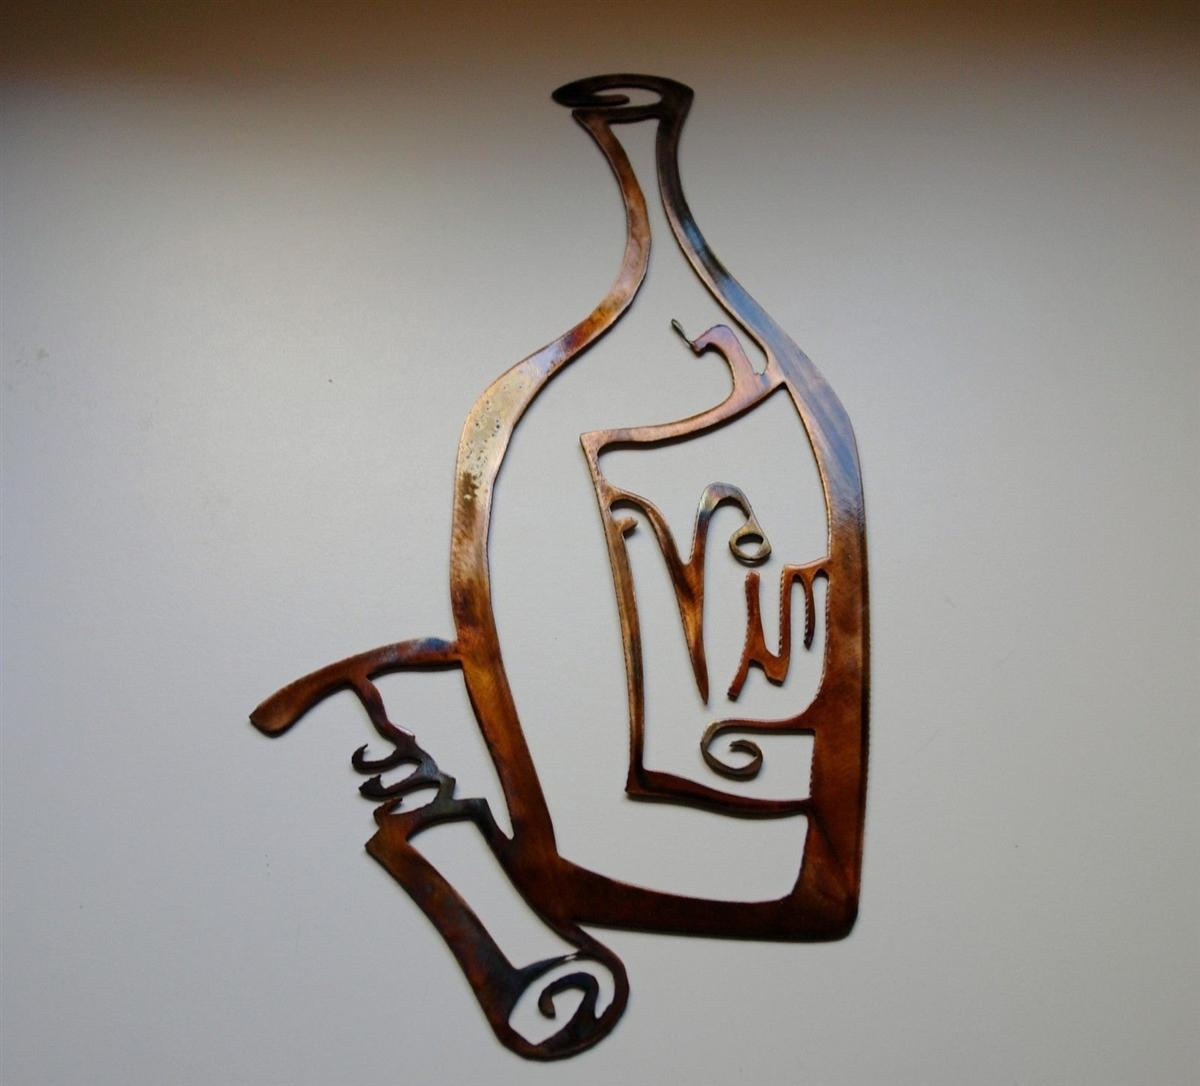 Vino! Metal Wall Art Decor, Wine Bottle And Opener Copper & Bronze regarding Wine Metal Wall Art